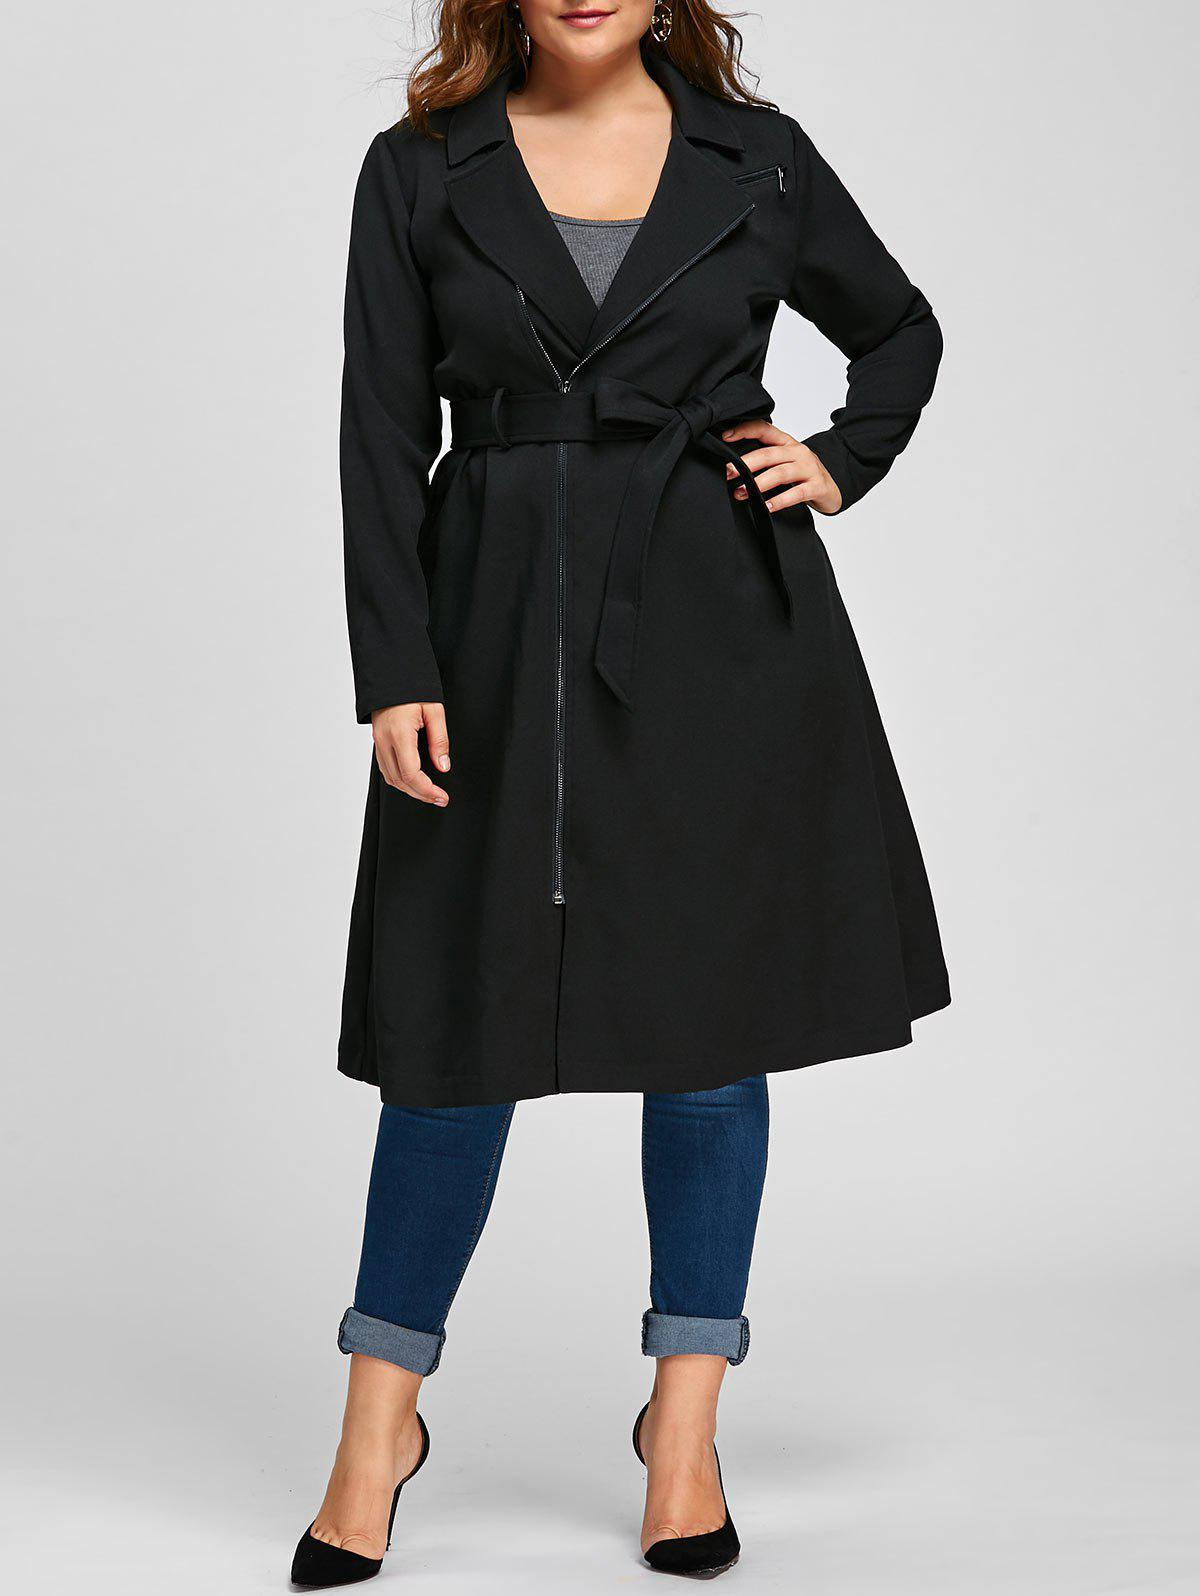 Plus Size Zip Up Trench Coat with Tie BeltWOMEN<br><br>Size: 2XL; Color: BLACK; Clothes Type: Trench; Material: Polyester,Spandex; Type: Slim; Shirt Length: Long; Sleeve Length: Full; Collar: Notched Collar; Pattern Type: Solid; Style: Fashion; Season: Fall,Spring; Weight: 0.8000kg; Package Contents: 1 x Coat  1 x Belt;